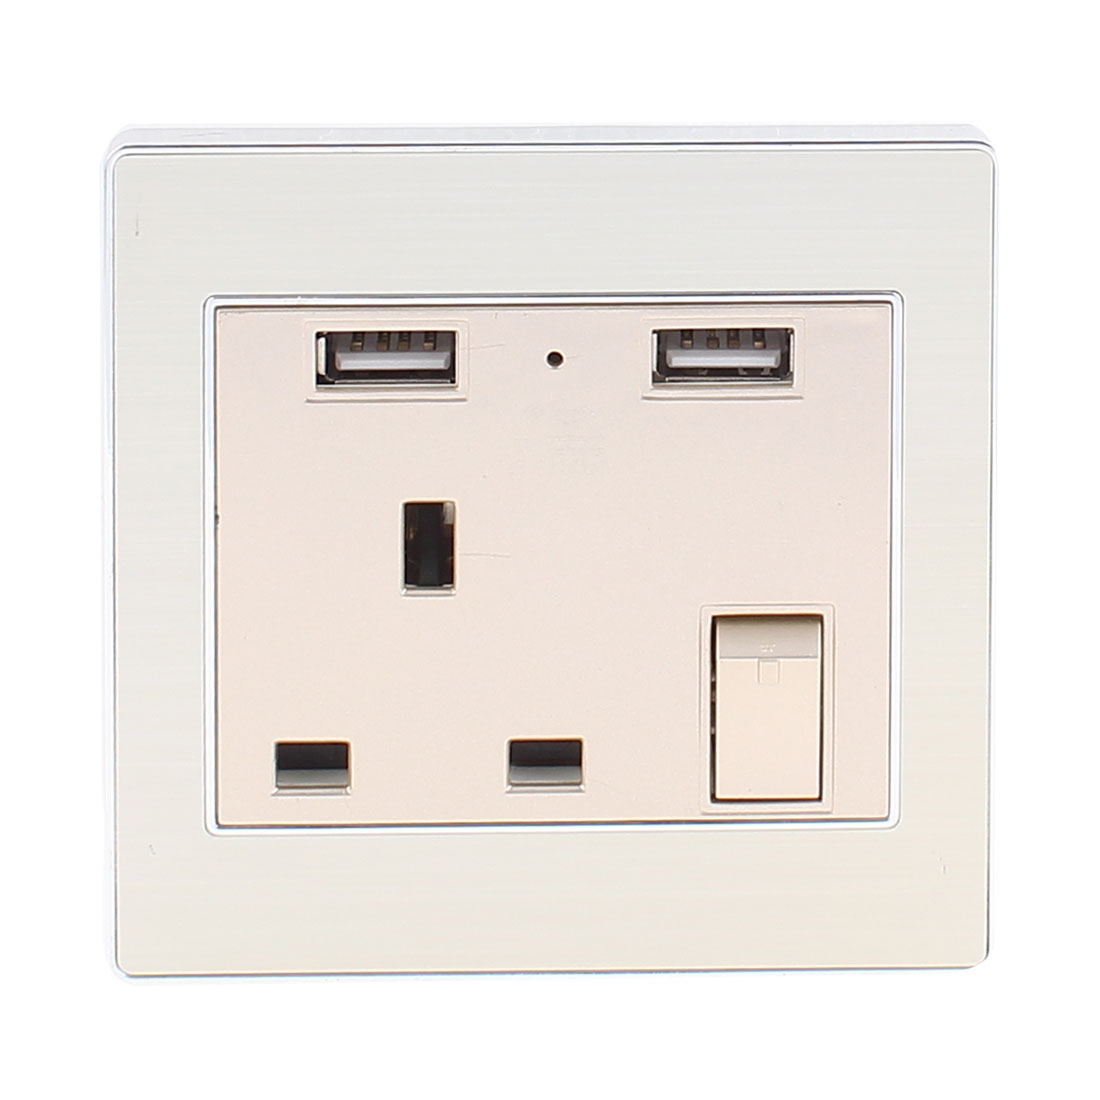 AC 110V-250V UK Socket 2 USB Port 5VDC 2100mA Charger Power LED Light Switch Wall Outlet